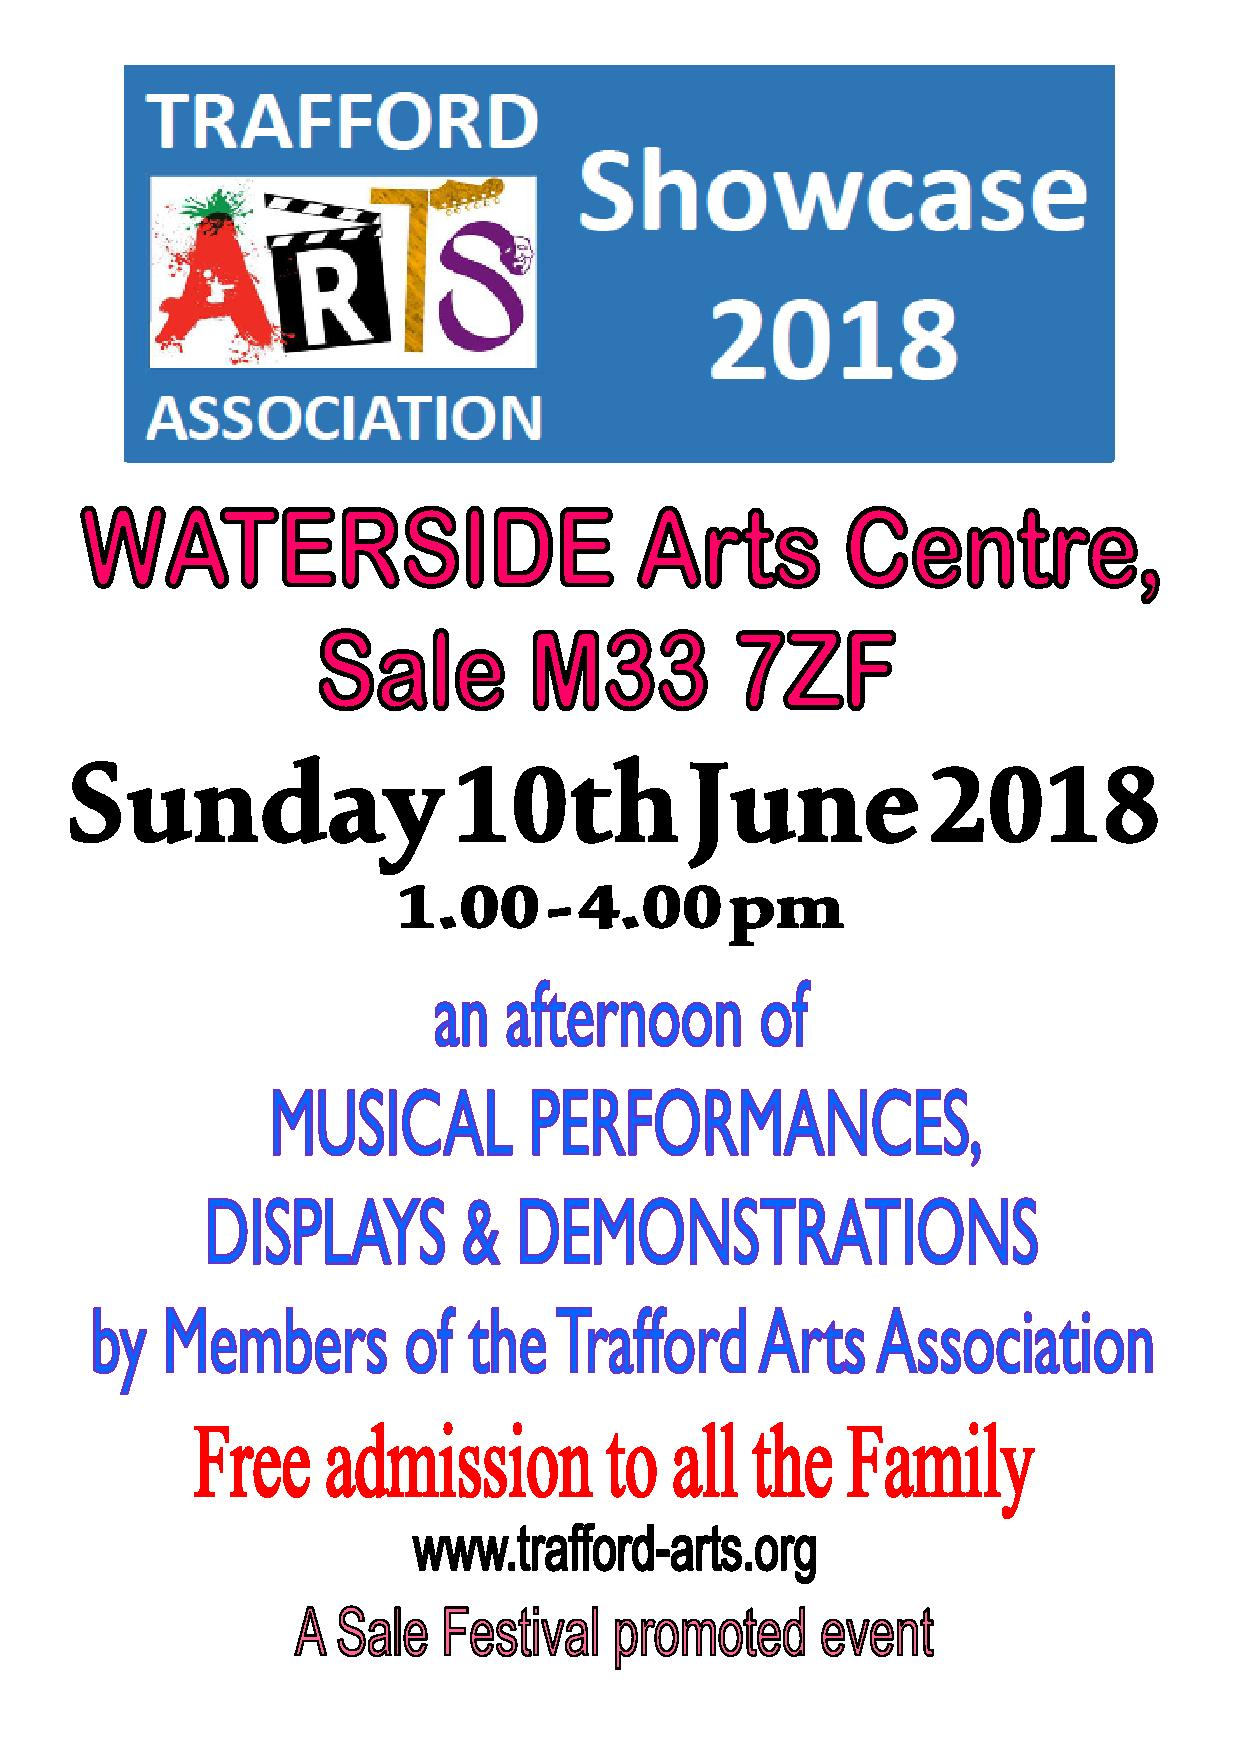 Trafford Arts Association Members' Showcase